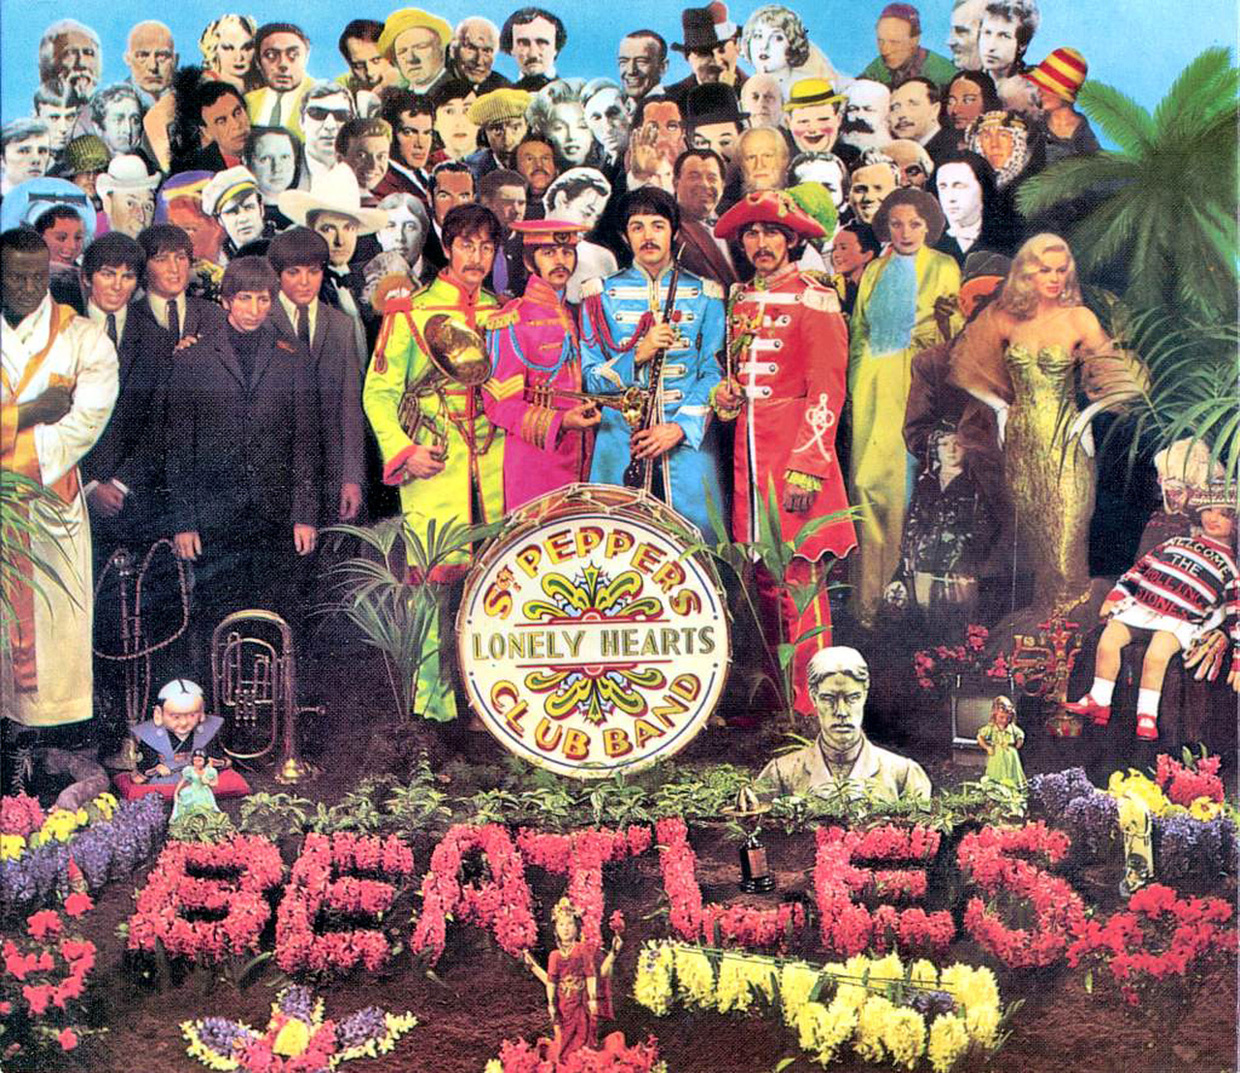 "A Liverpool un negozio pop-up dedicato a ""Sgt. Pepper's Lonely Hearts Club Band"" - La copertina di Sgt. Pepper"